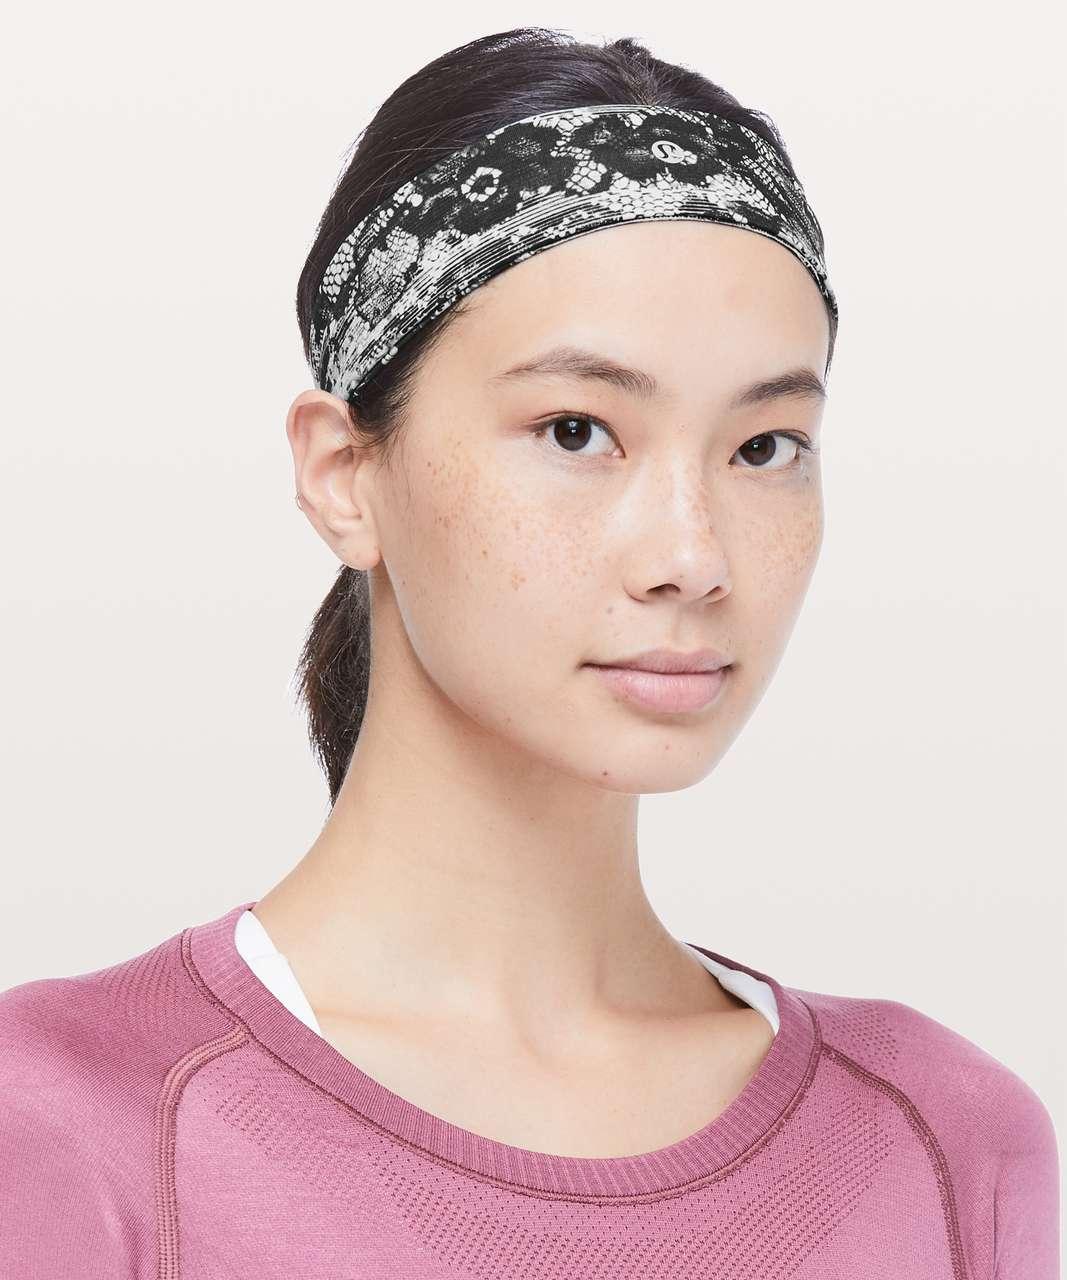 Lululemon Fly Away Tamer Headband II - Masked Lace Starlight Black